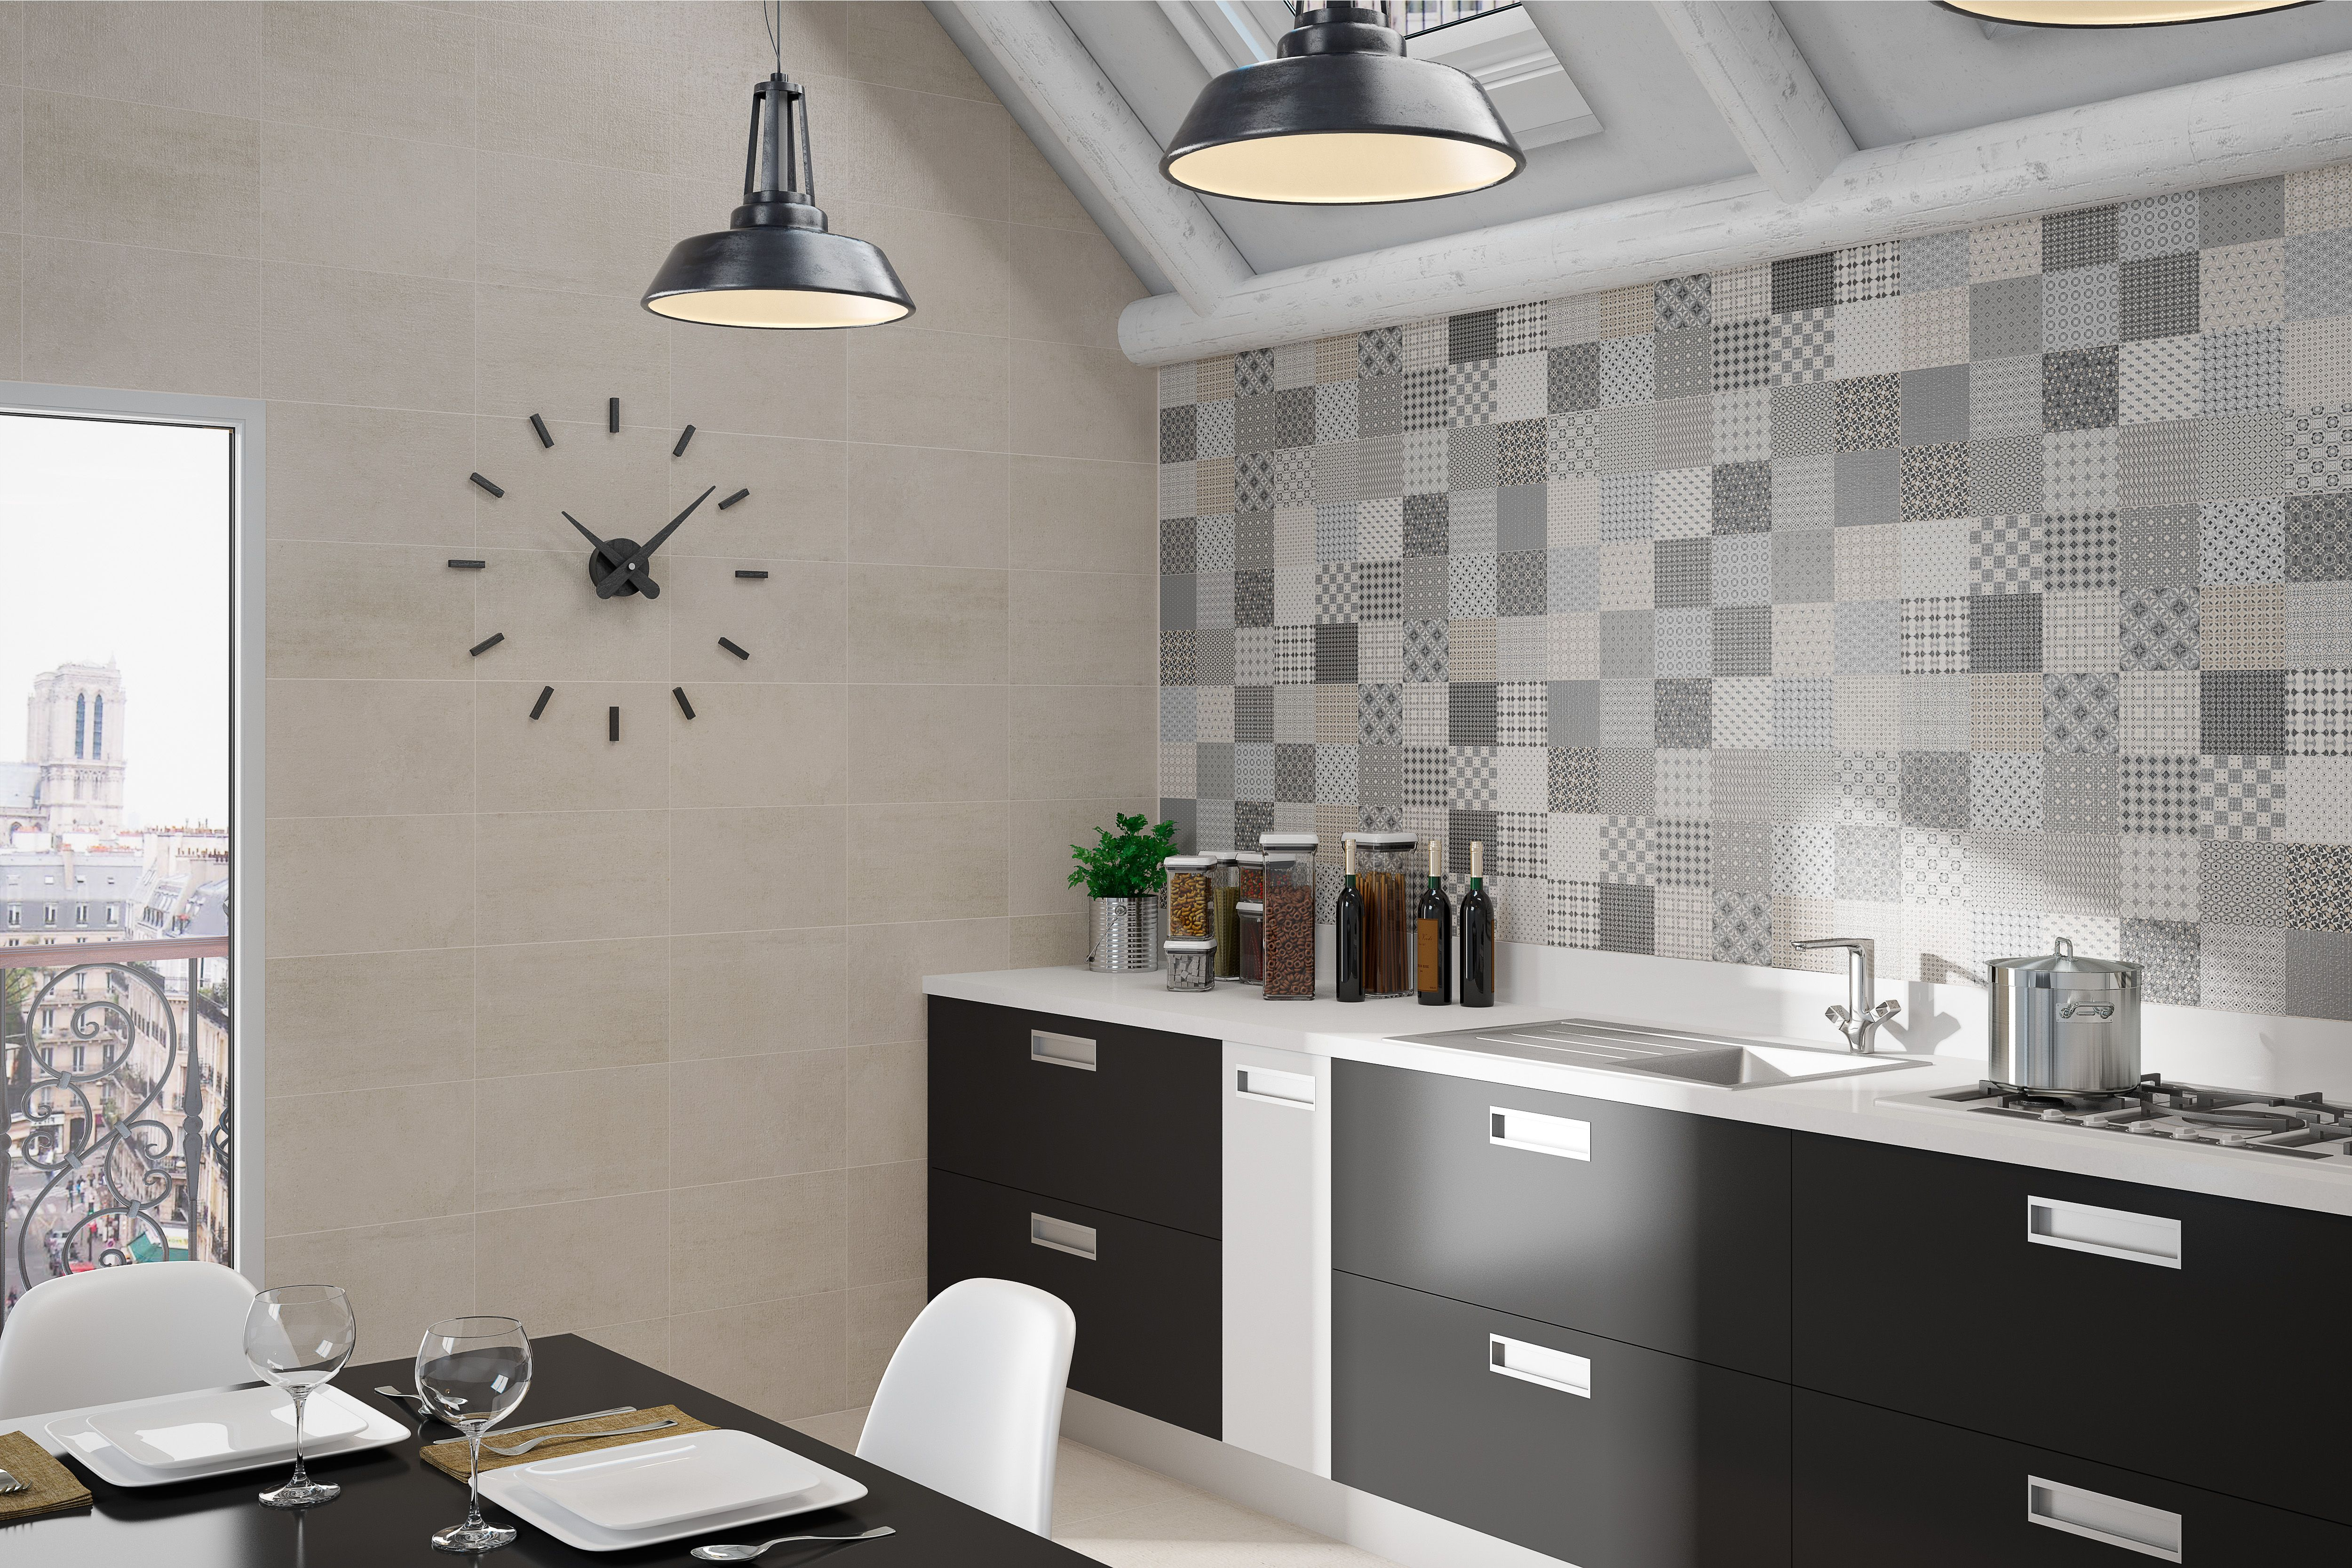 neolitick collection colorker colorker kitchen tiles neolitick collection colorker colorker kitchen tiles whitebody stoneeffect decor interiors kitchen inspiration pinterest interiors and